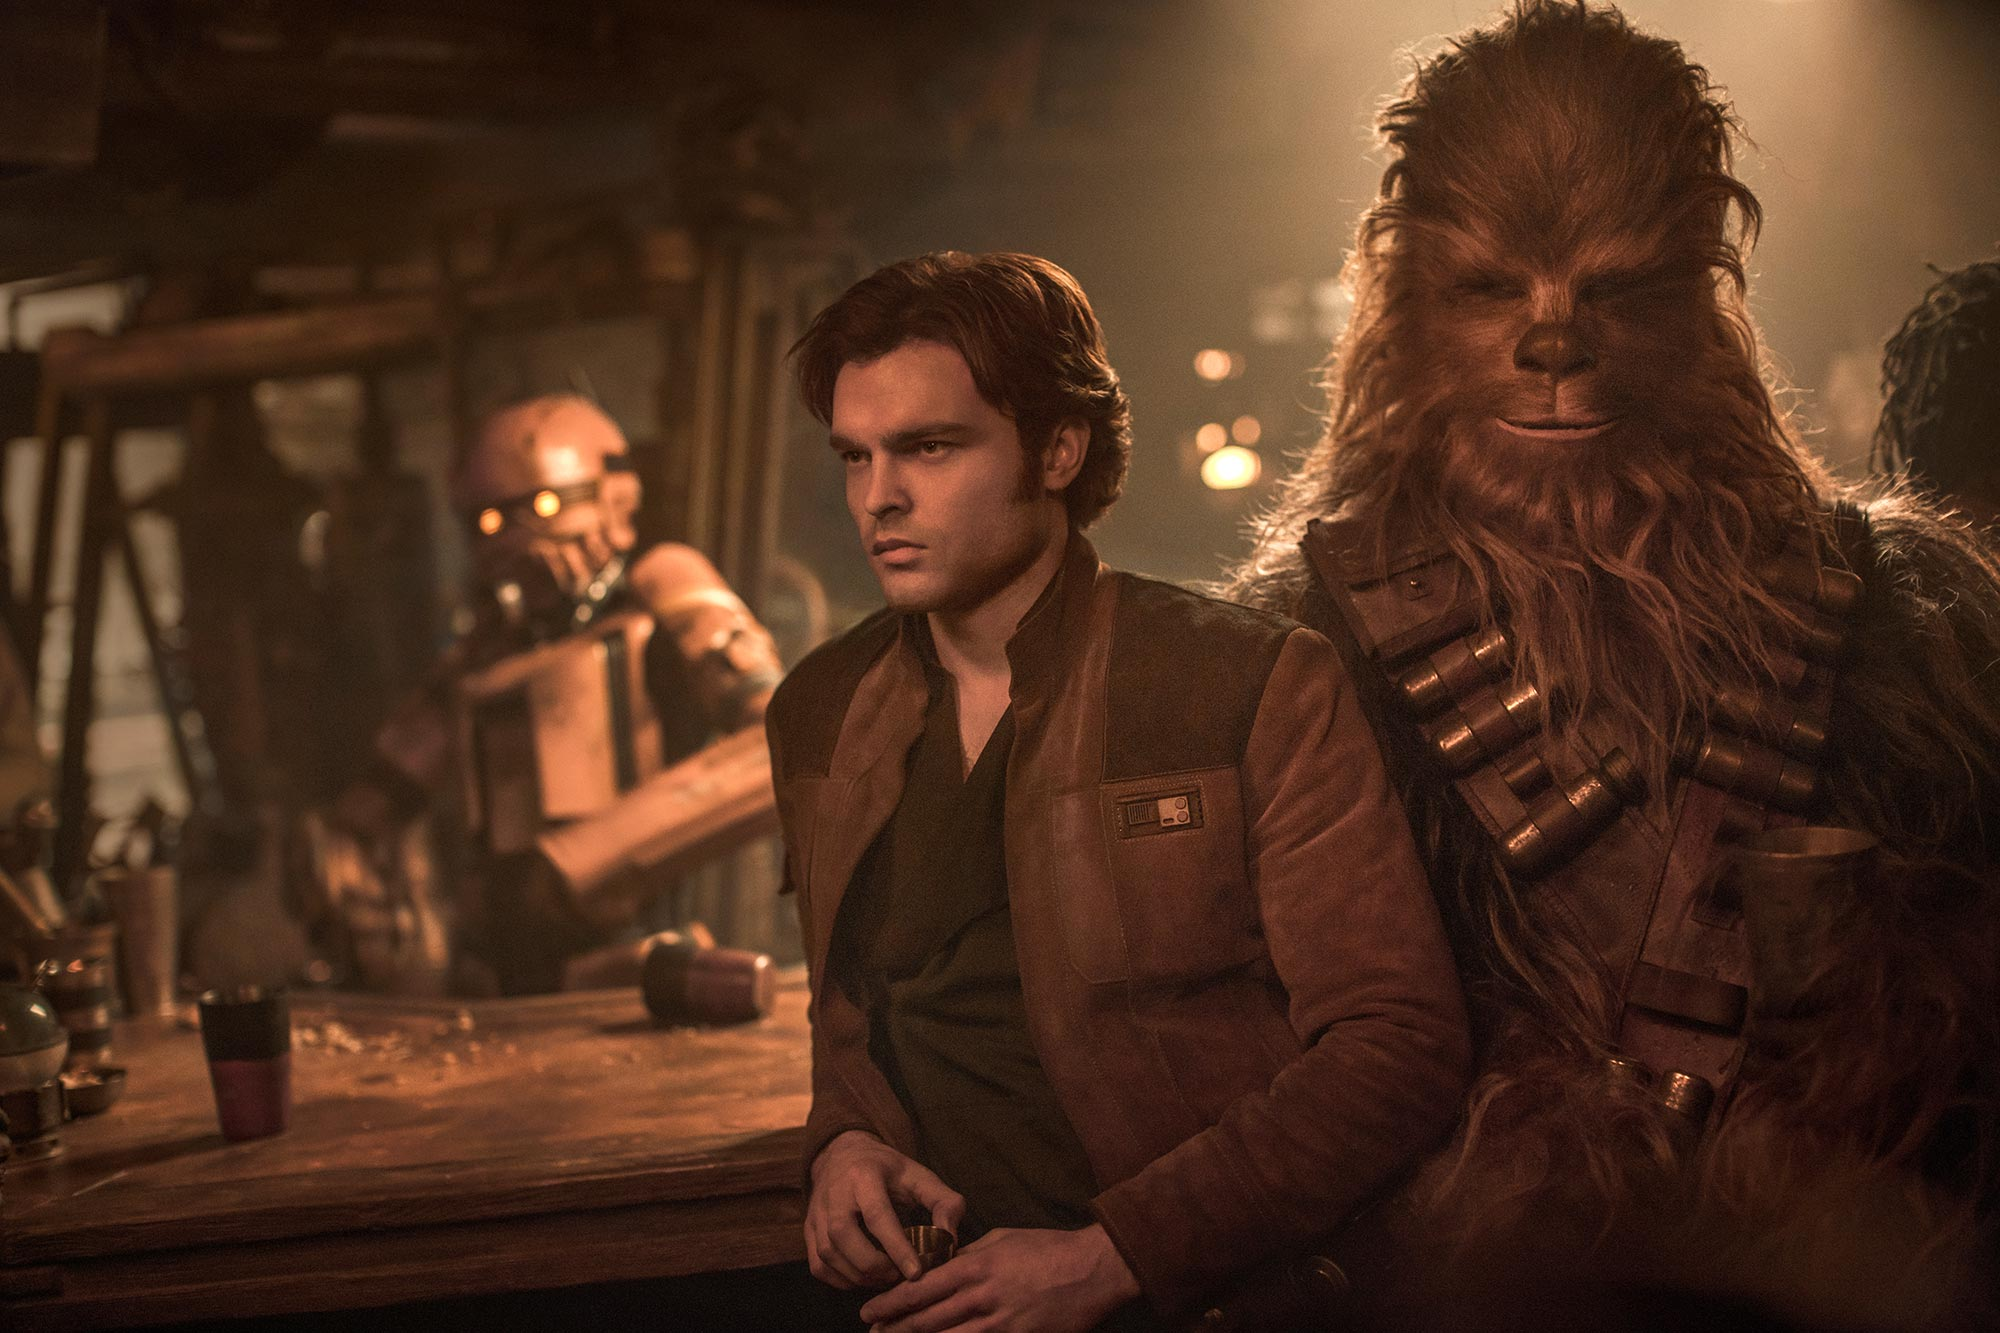 Star Wars Ranking SOLO: A STAR WARS STORY